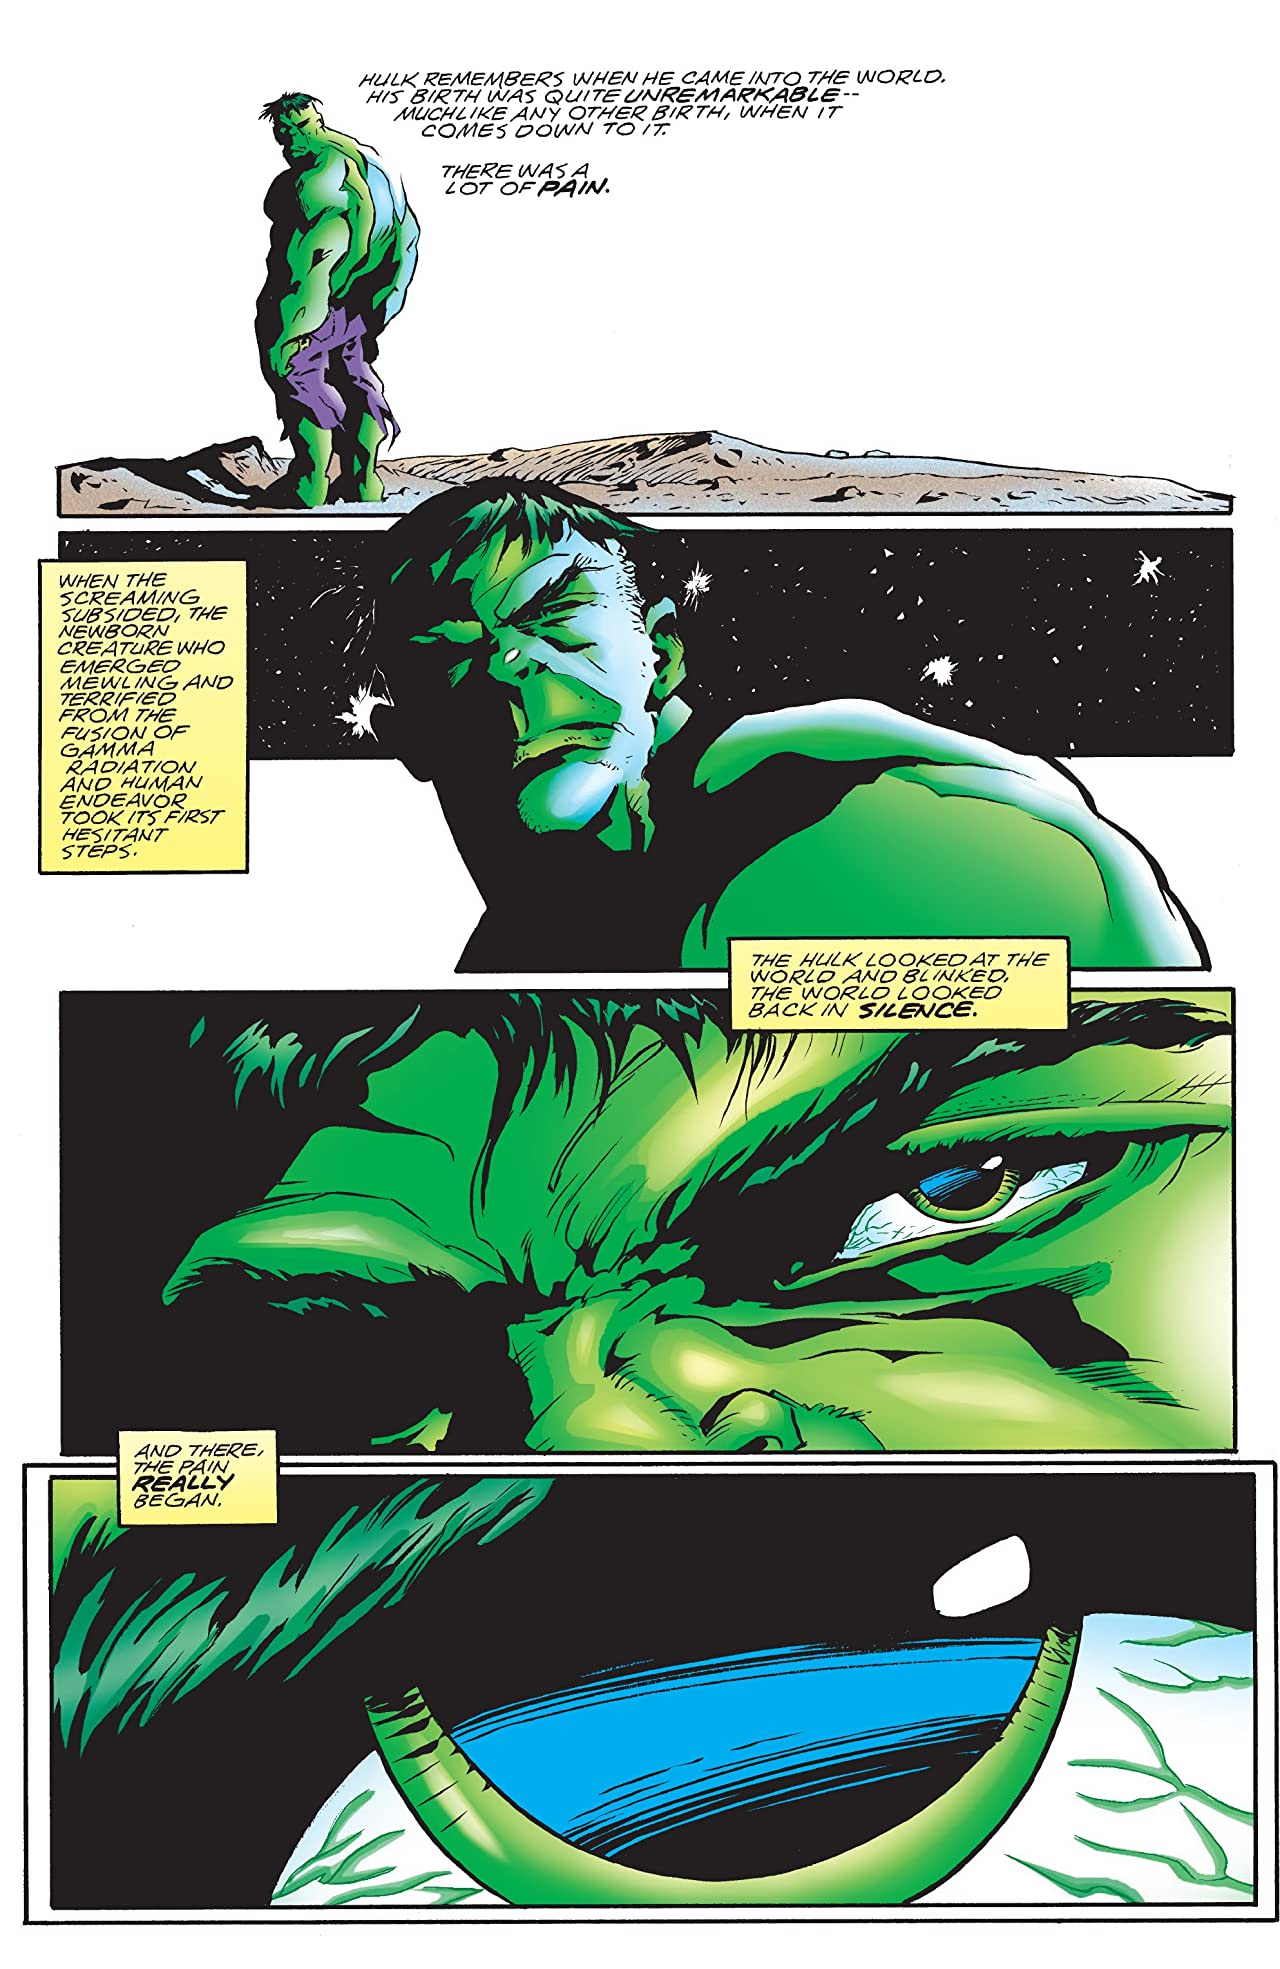 Incredible Hulk Annual 2000 #1